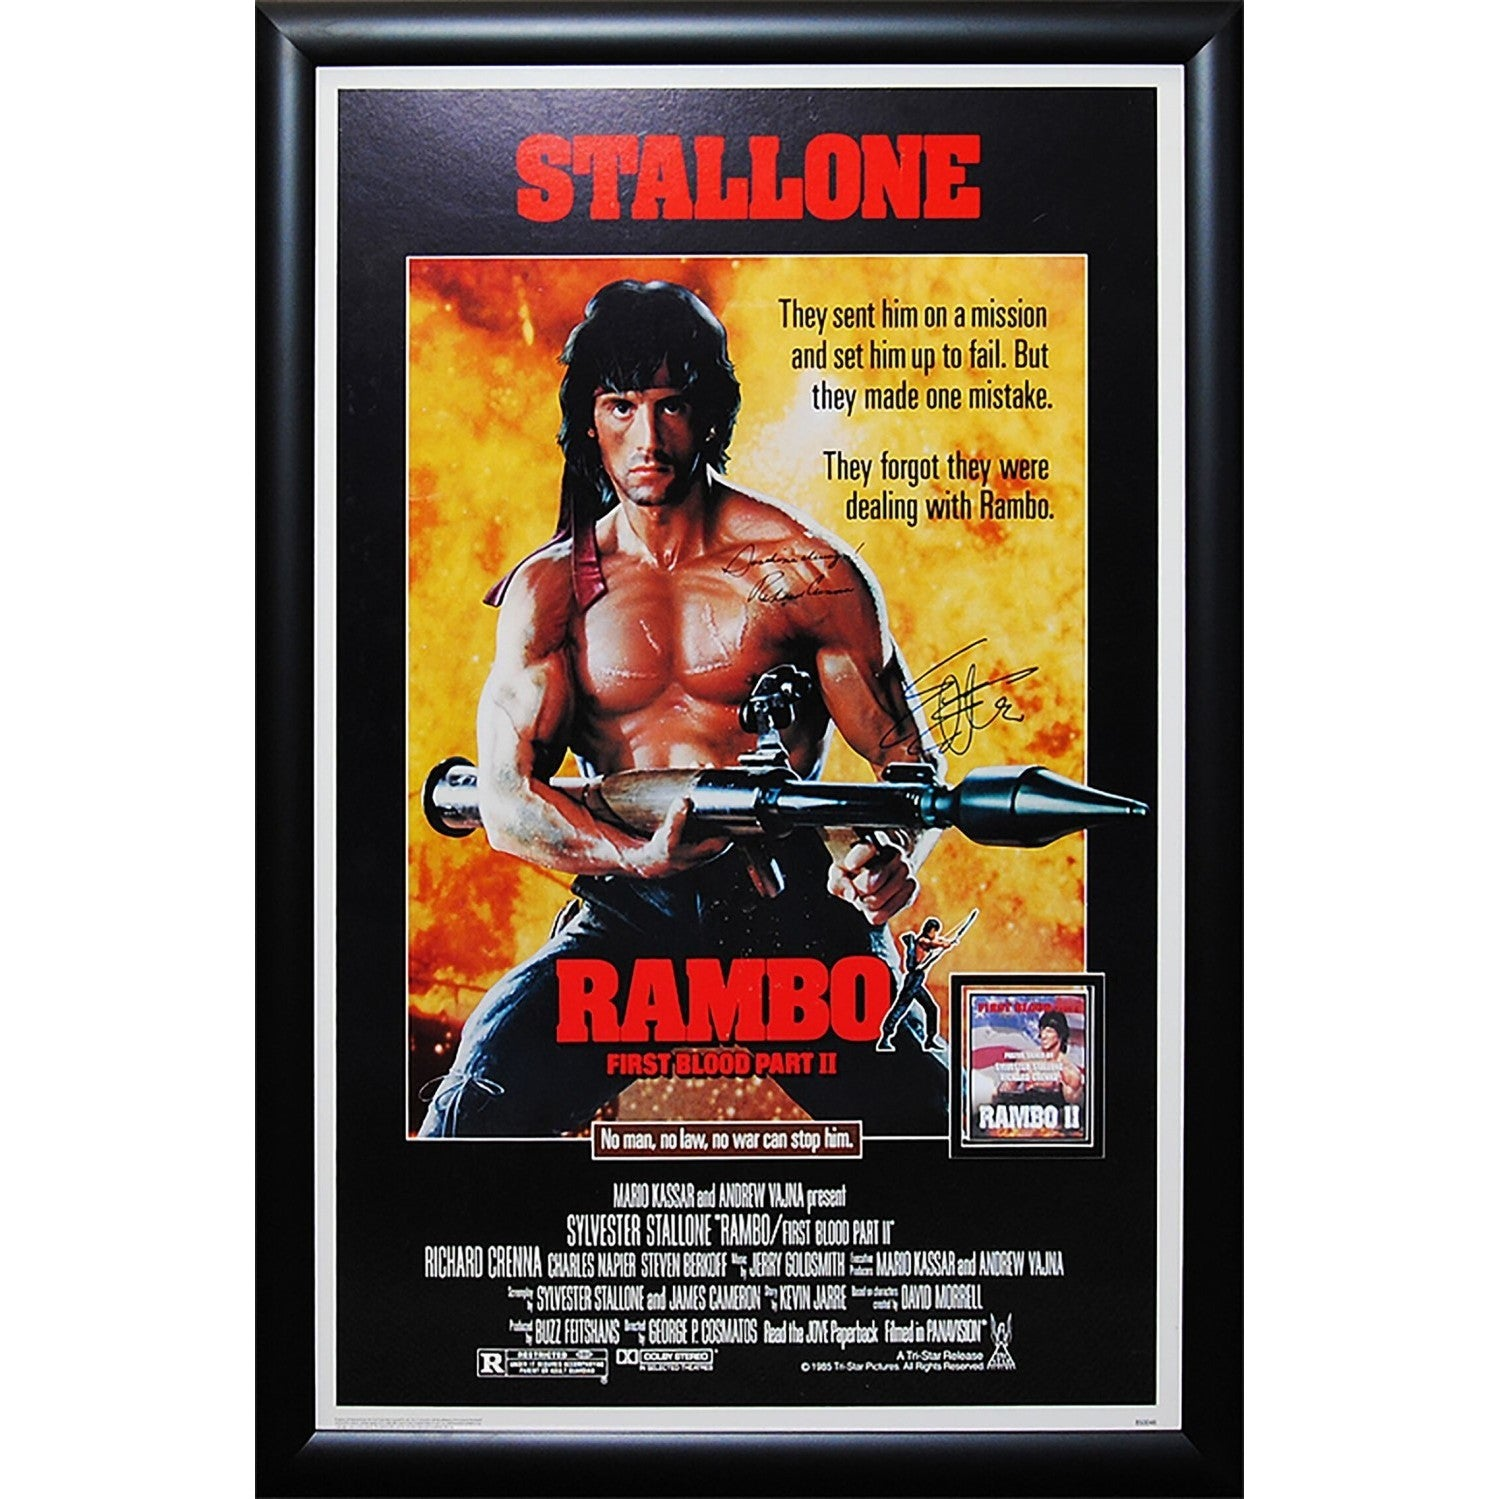 Luxe Rambo - Signed Movie Poster (Black), Multi (Acrylic)